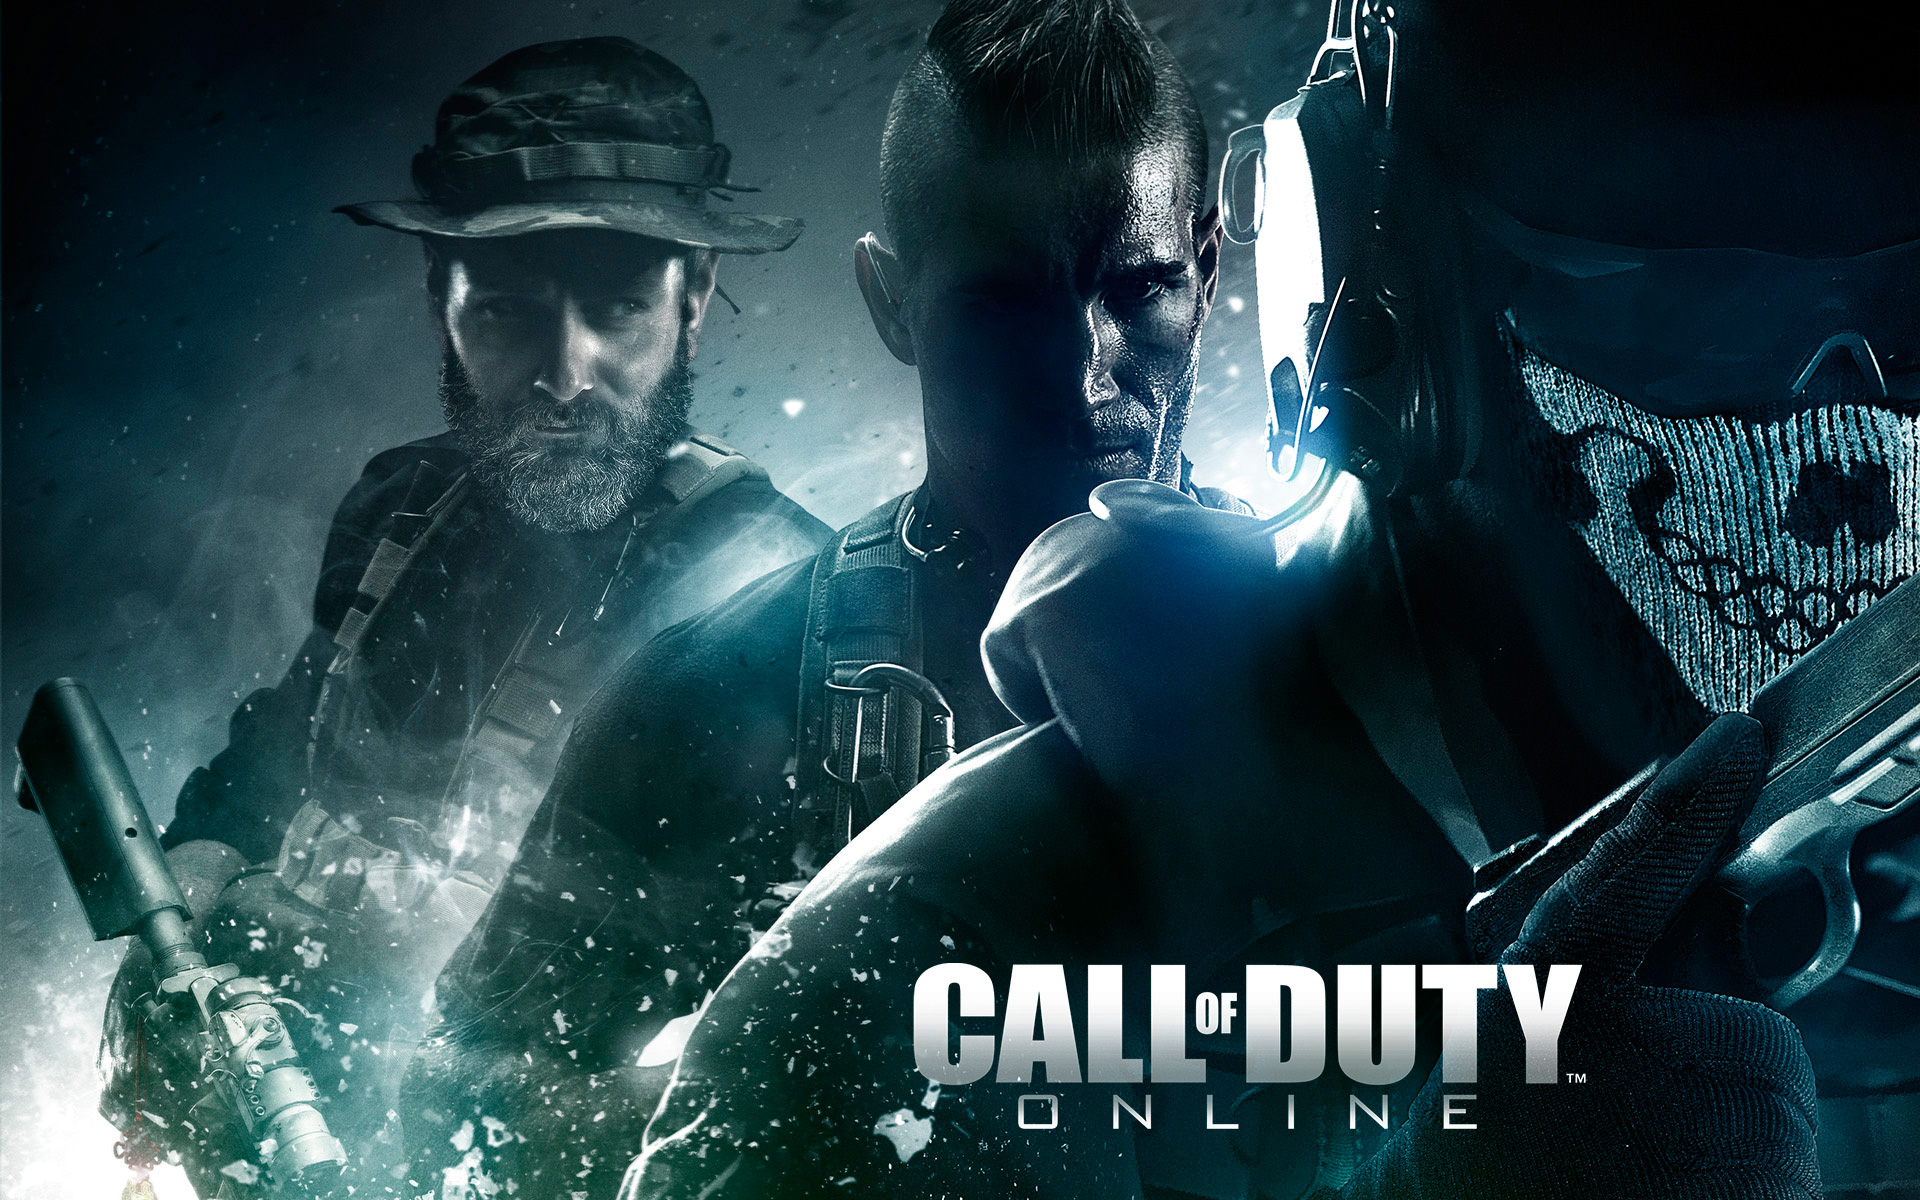 Call of Duty Online Game Wallpapers HD Wallpapers 1920x1200